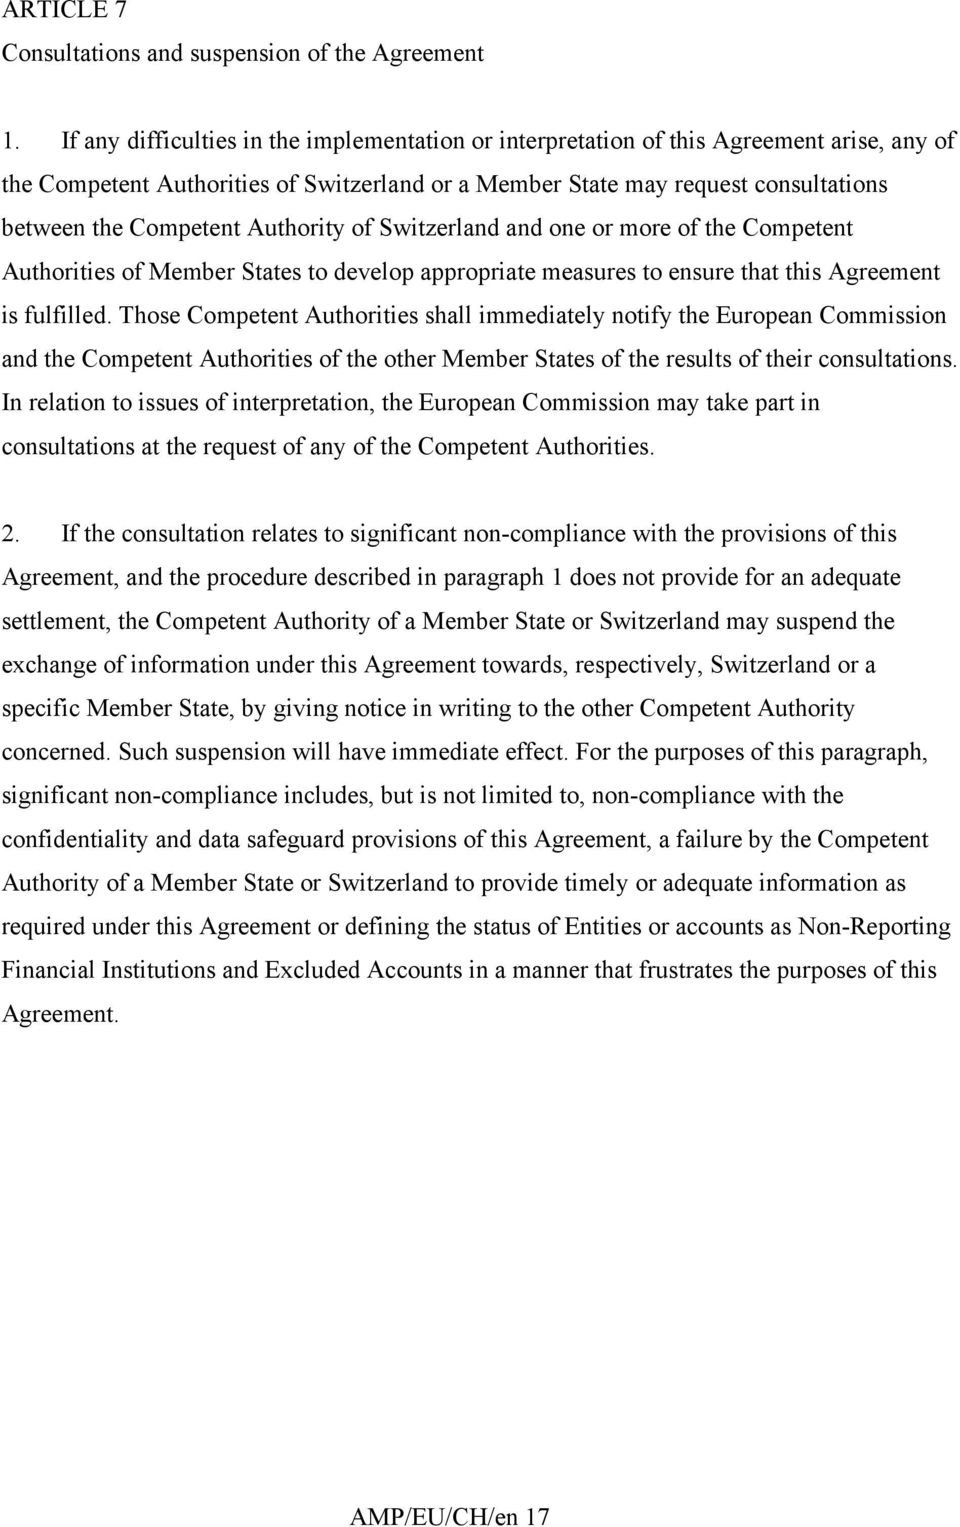 Authority of Switzerland and one or more of the Competent Authorities of Member States to develop appropriate measures to ensure that this Agreement is fulfilled.